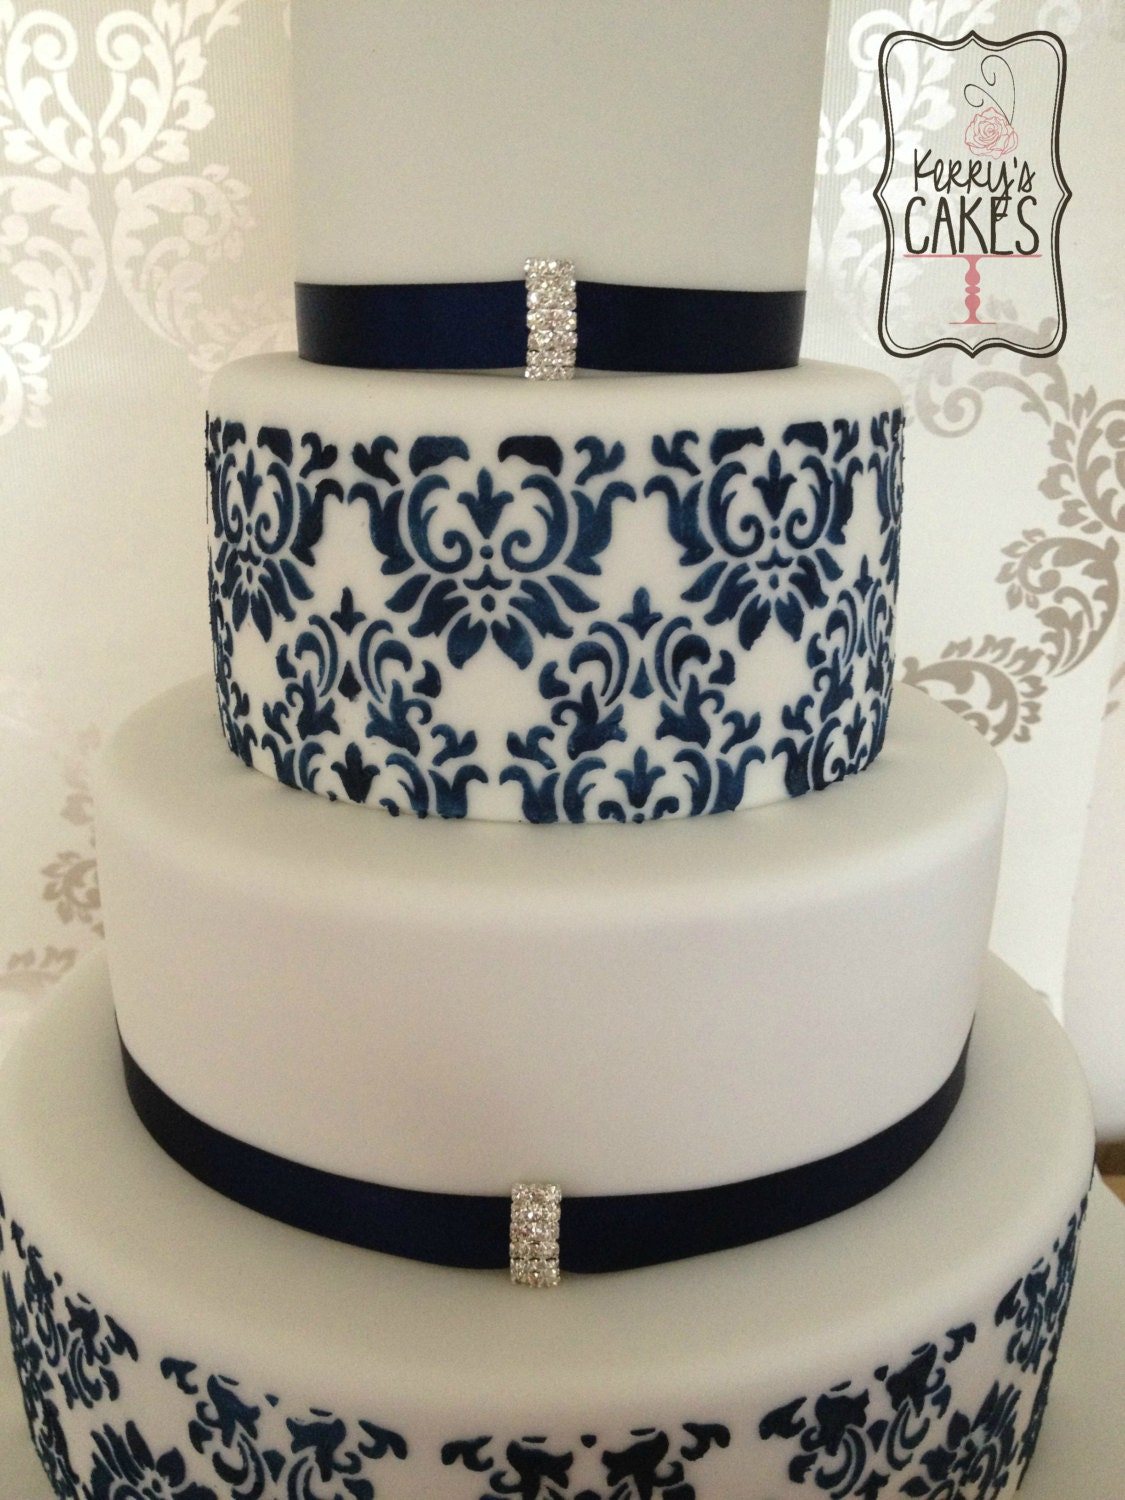 How To Use Cake Stencils On Fondant To Paint